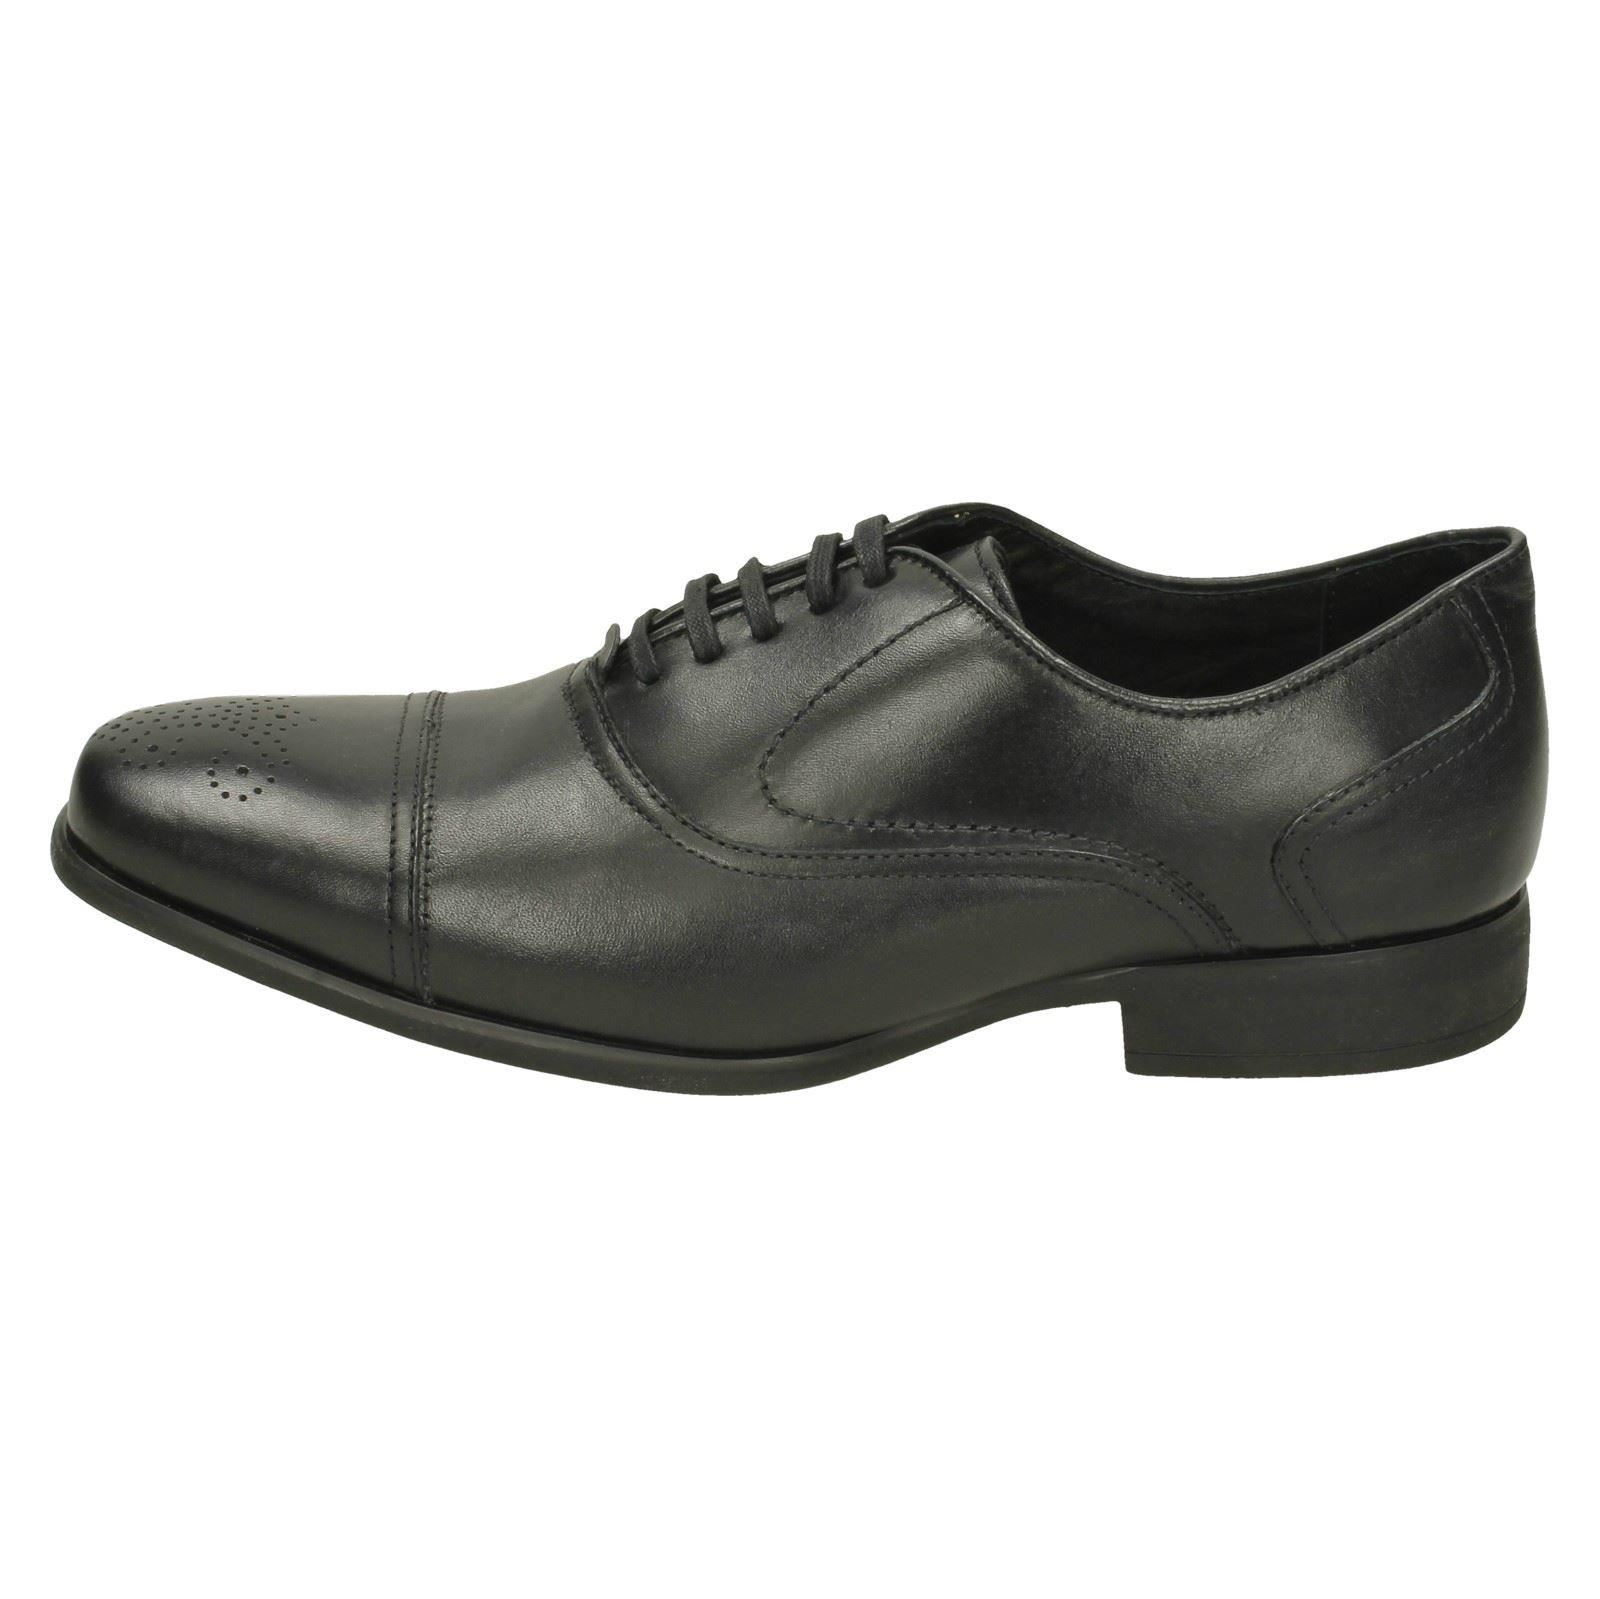 Black Touch Hommes Derbies Escada Anatomic noir awA840